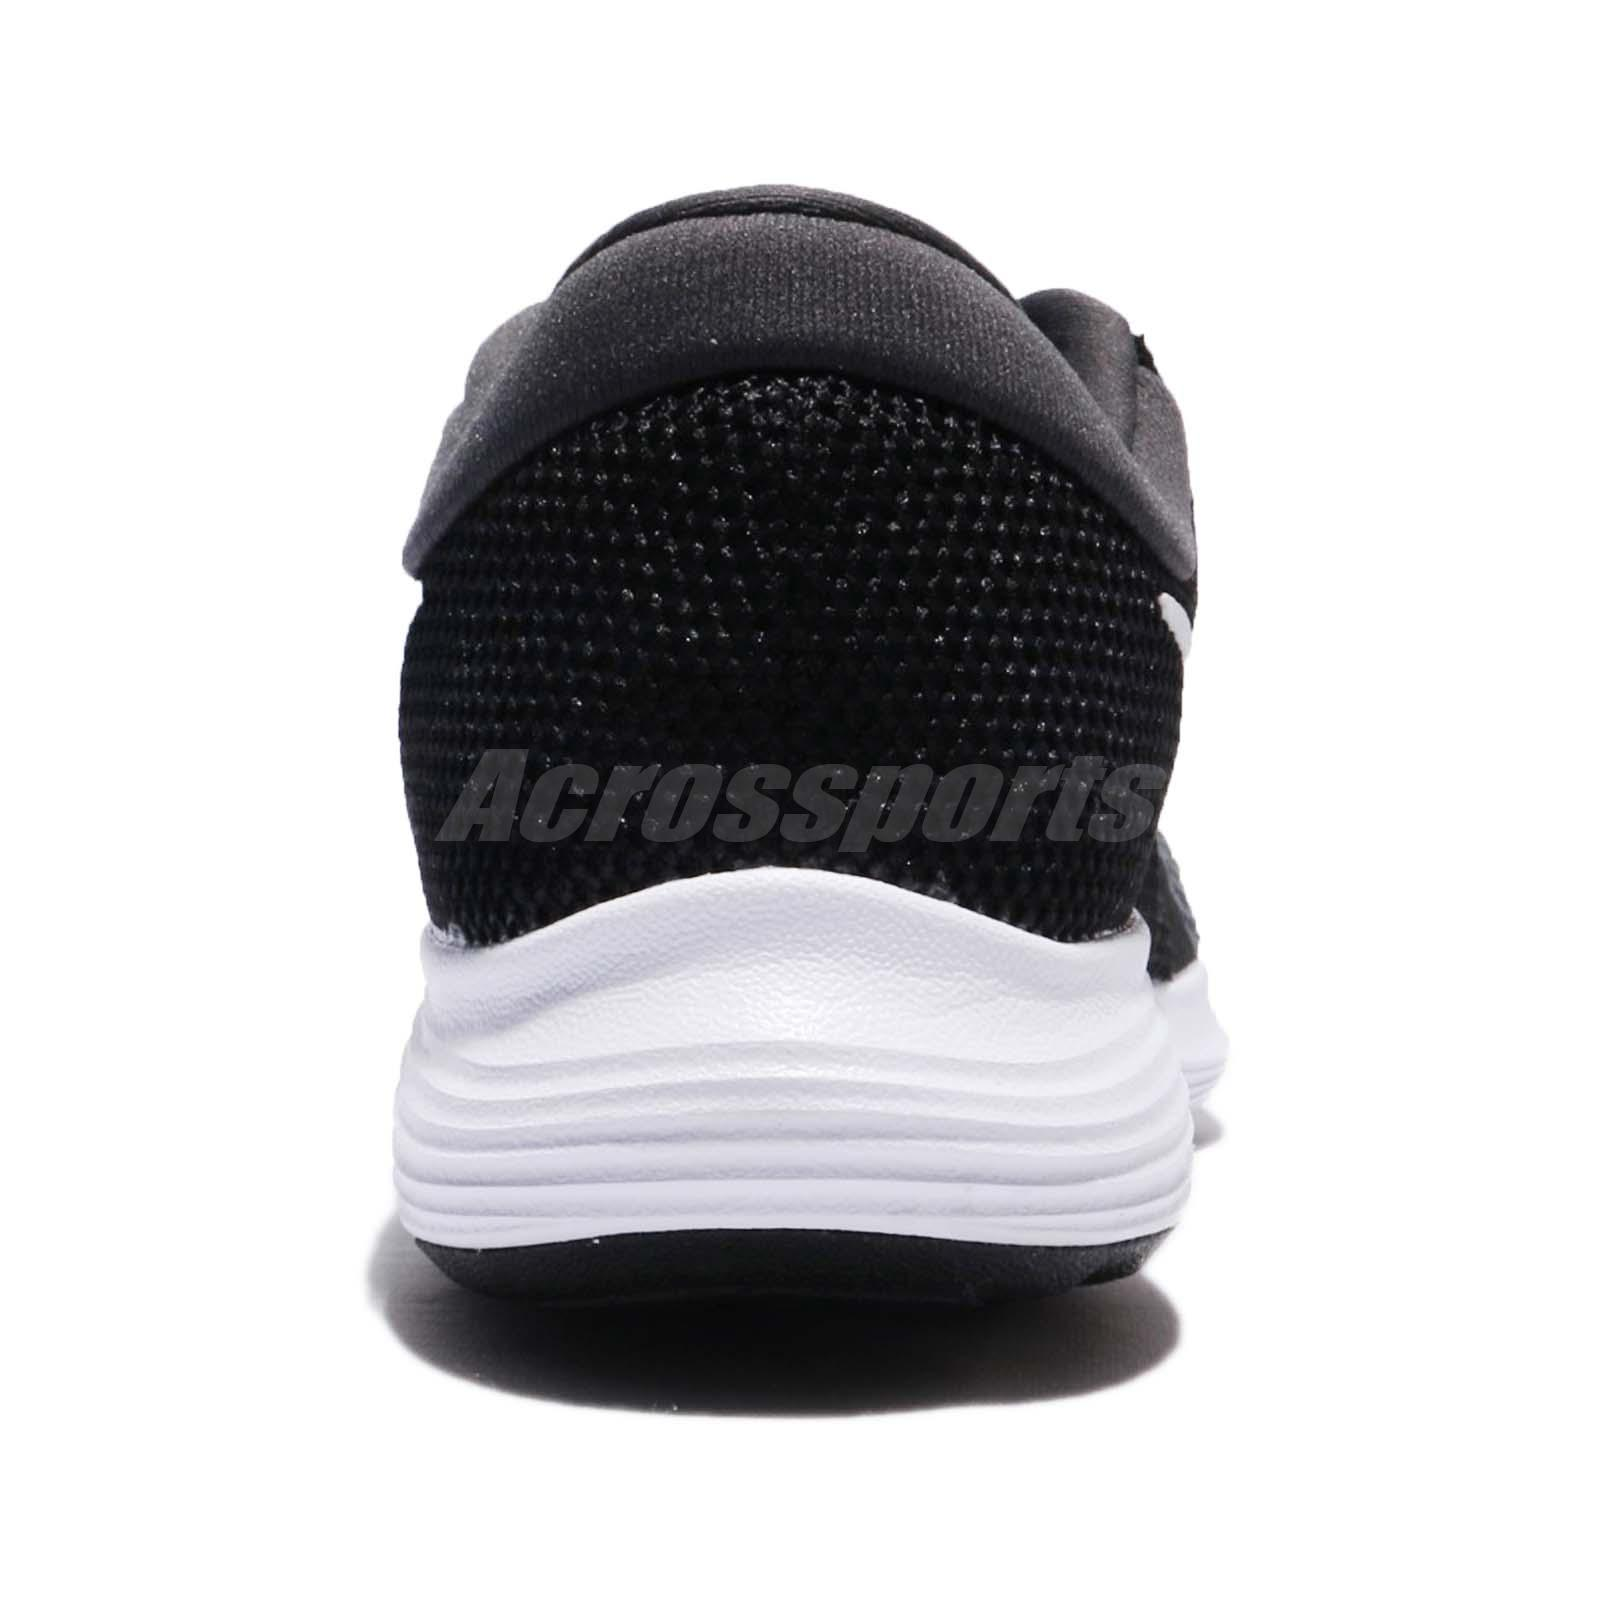 7f20b73e7c2e Nike Wmns Revolution 4 IV Black White Women Running Shoes Sneakers ...